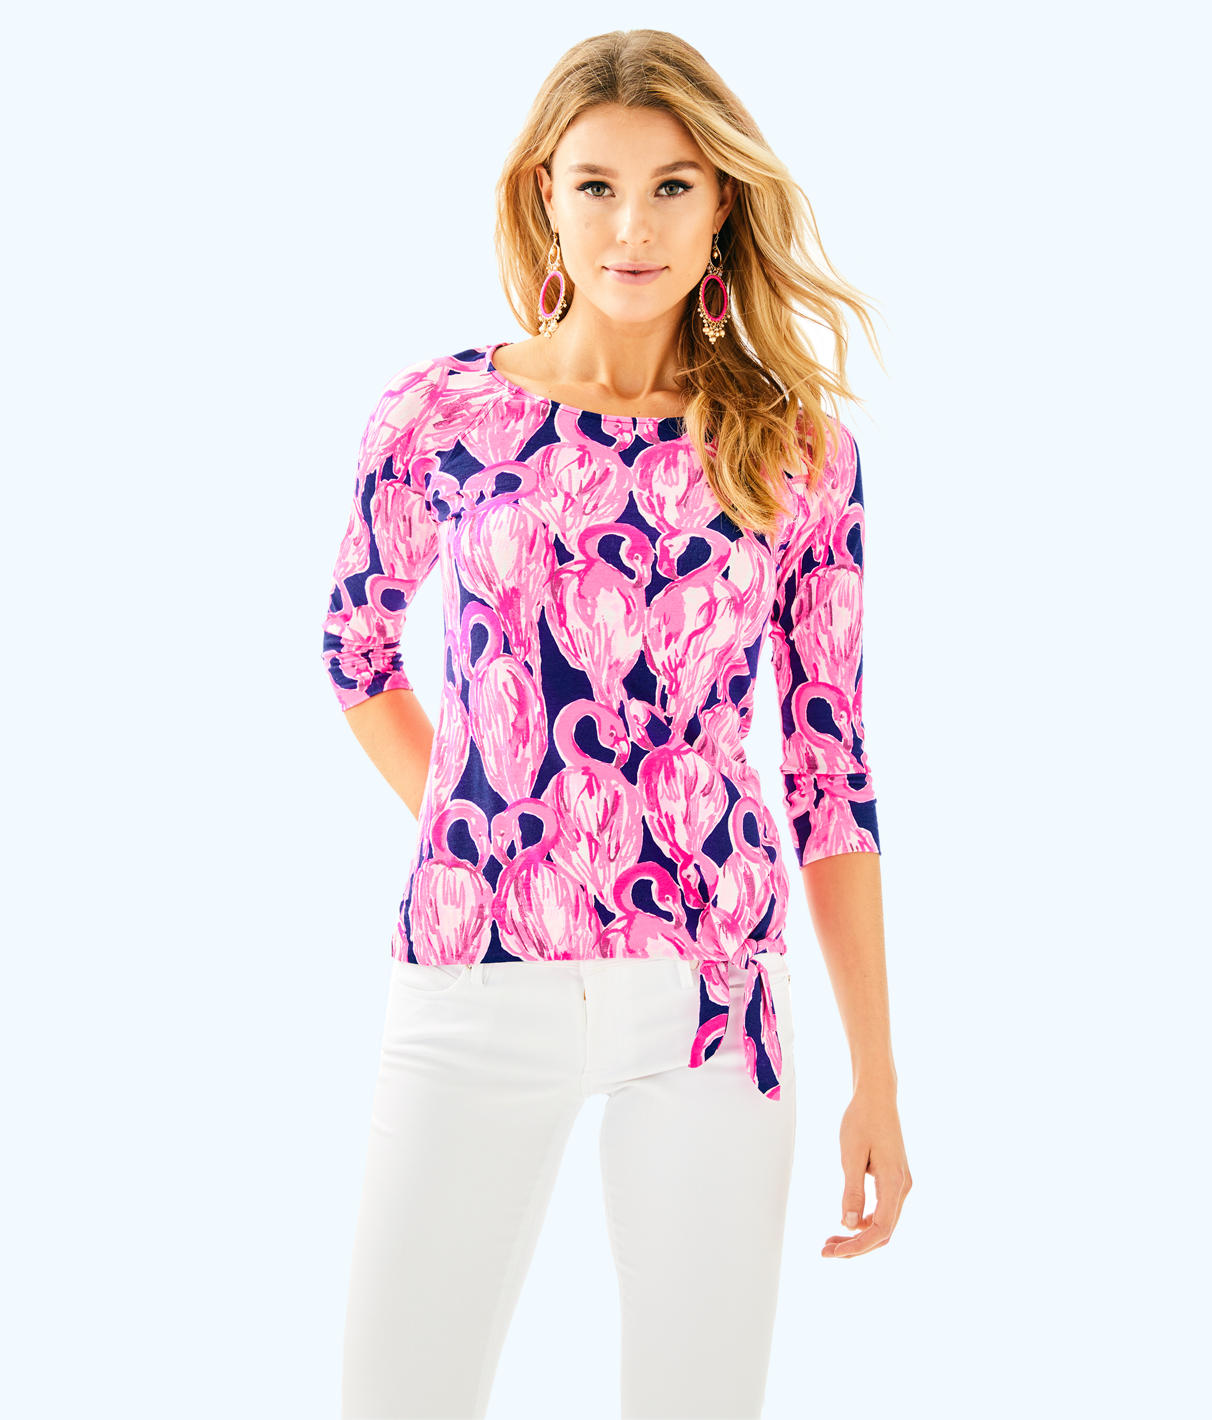 Lilly Pulitzer Lilly Pulitzer Womens Robyn Top